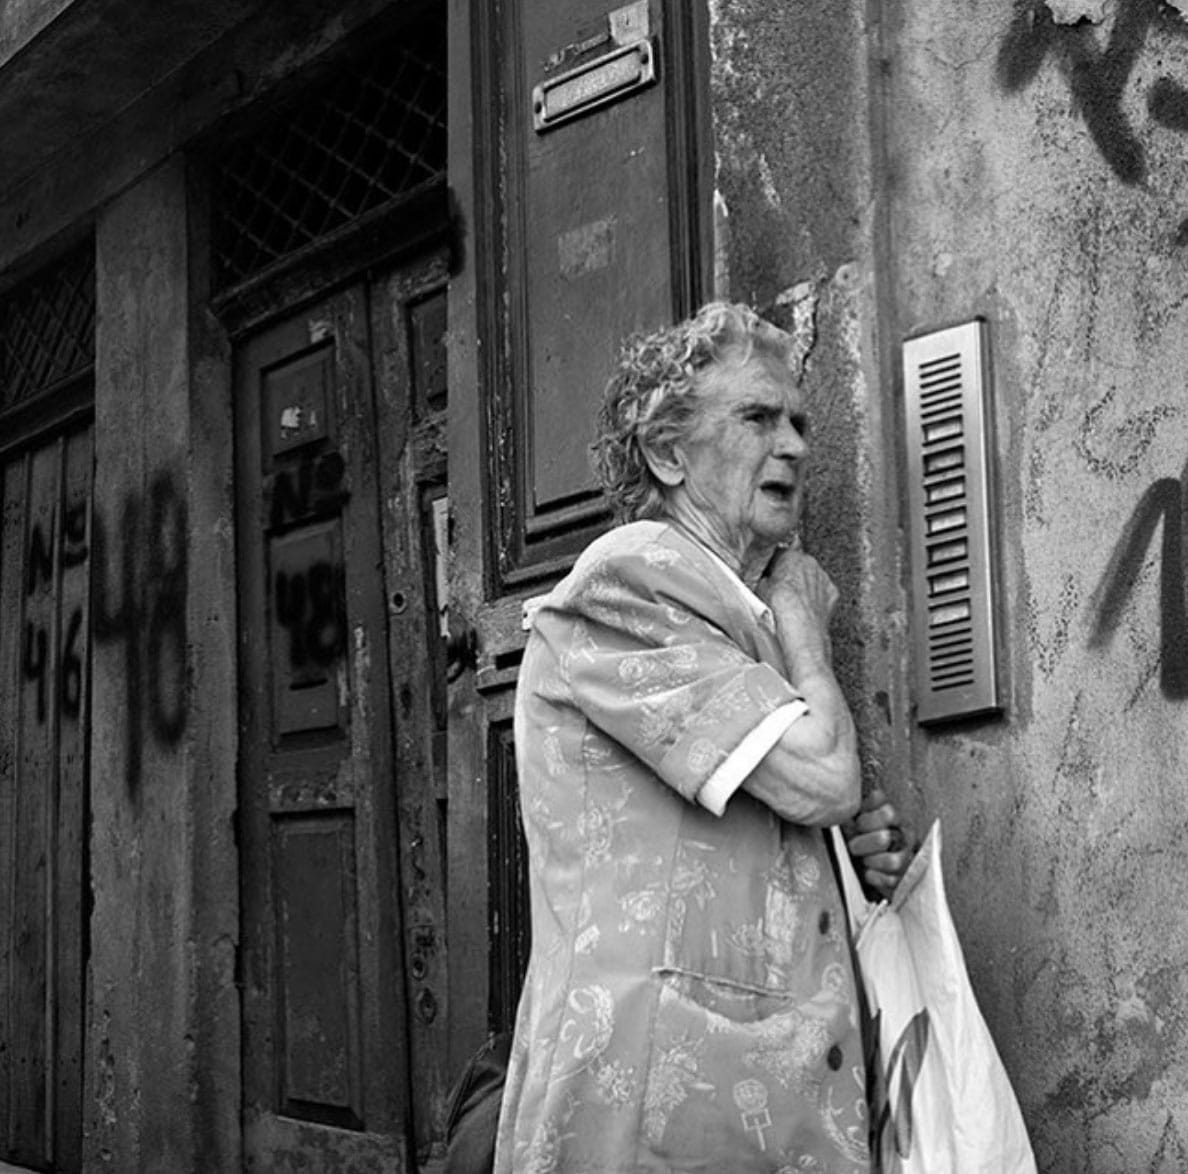 Elderly woman on the streets of Porto, Portugal